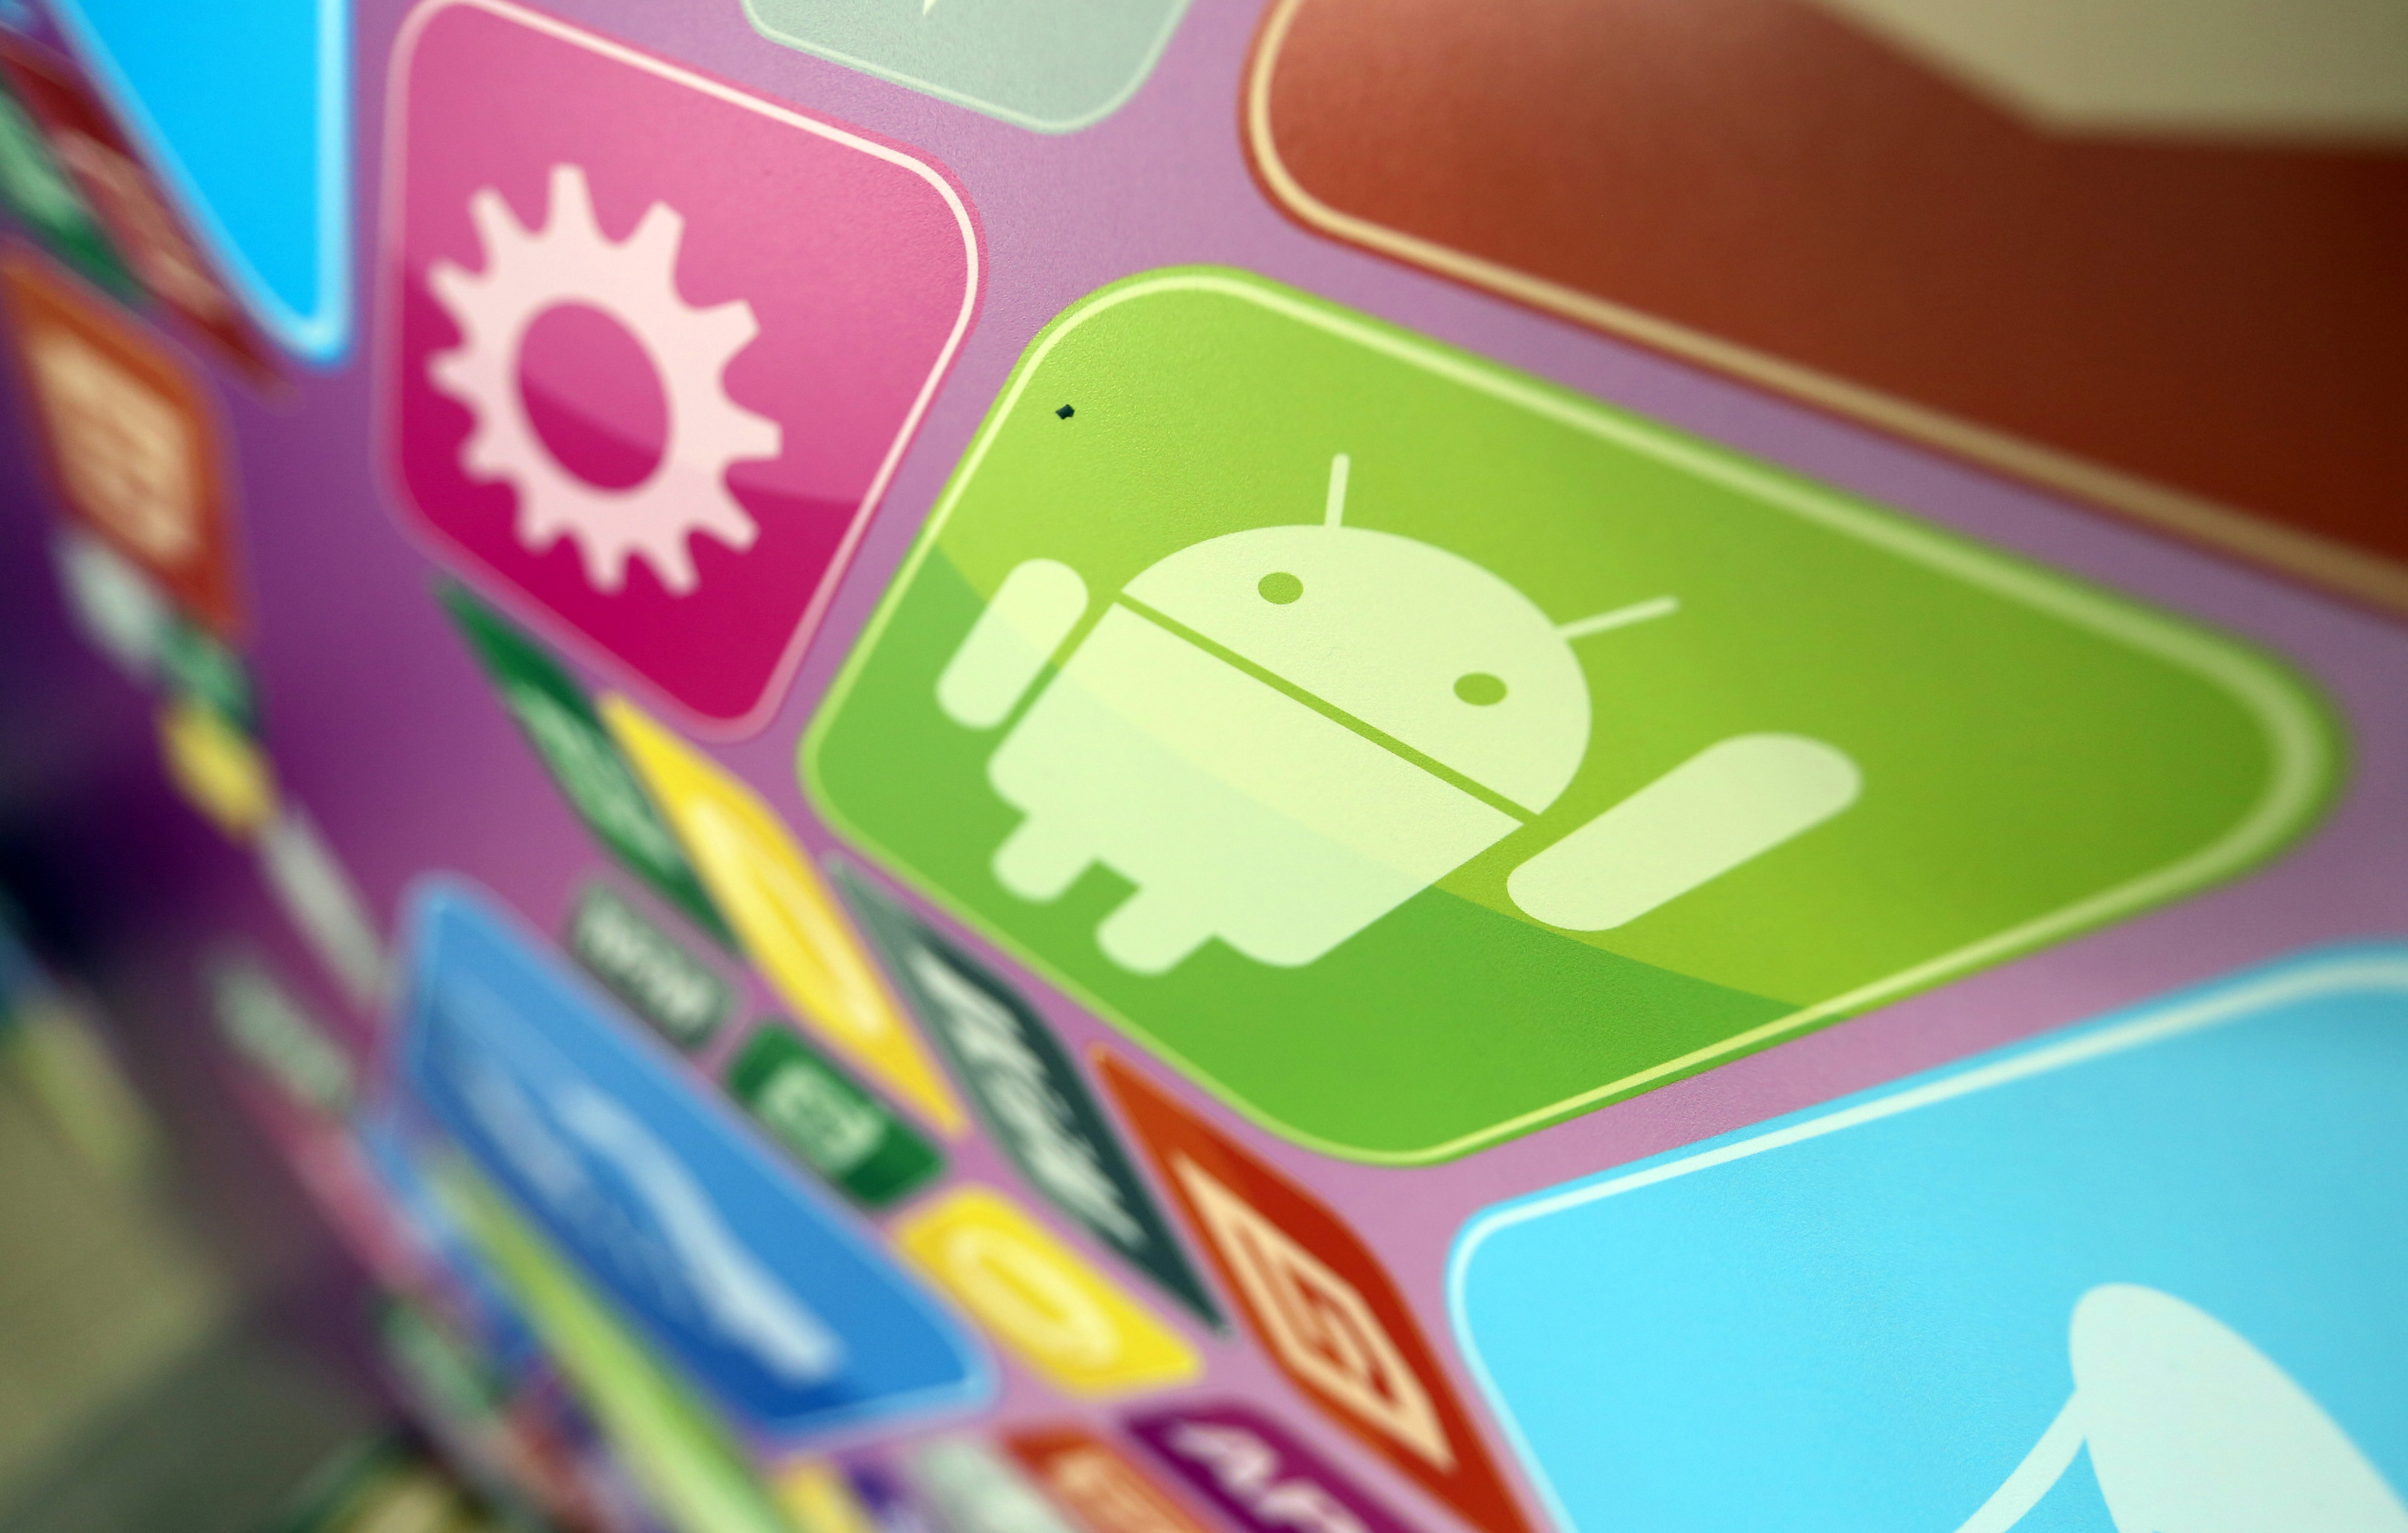 Google's Android platform is vulnerable to the attack.